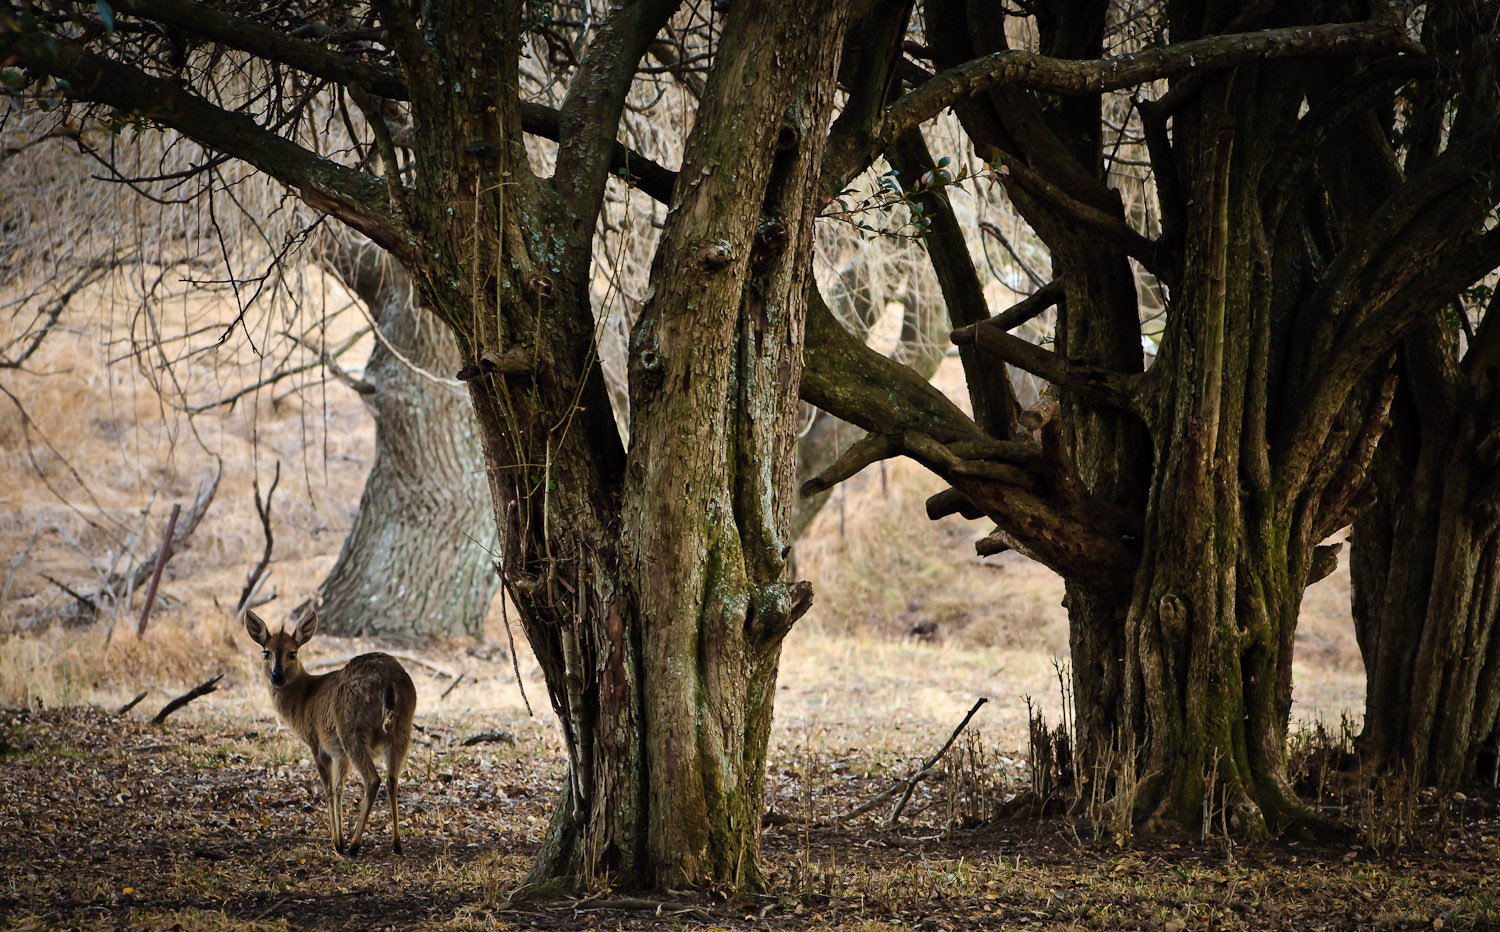 Photograph Forest Creature by Lawrence Boatwright on 500px